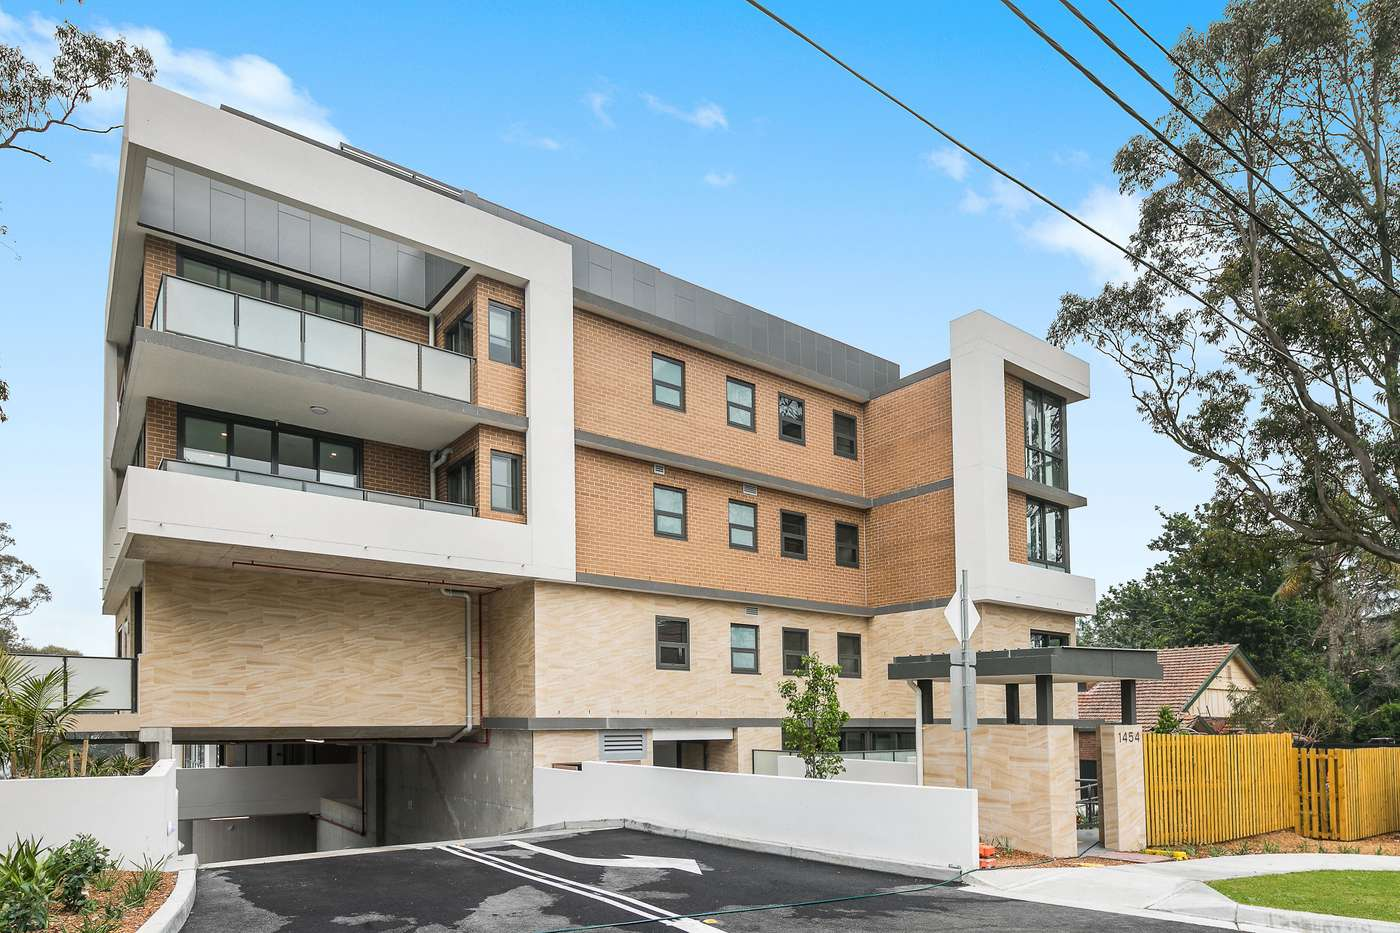 Main view of Homely apartment listing, 2 Bed/1454 Pacific Highway, Turramurra, NSW 2074